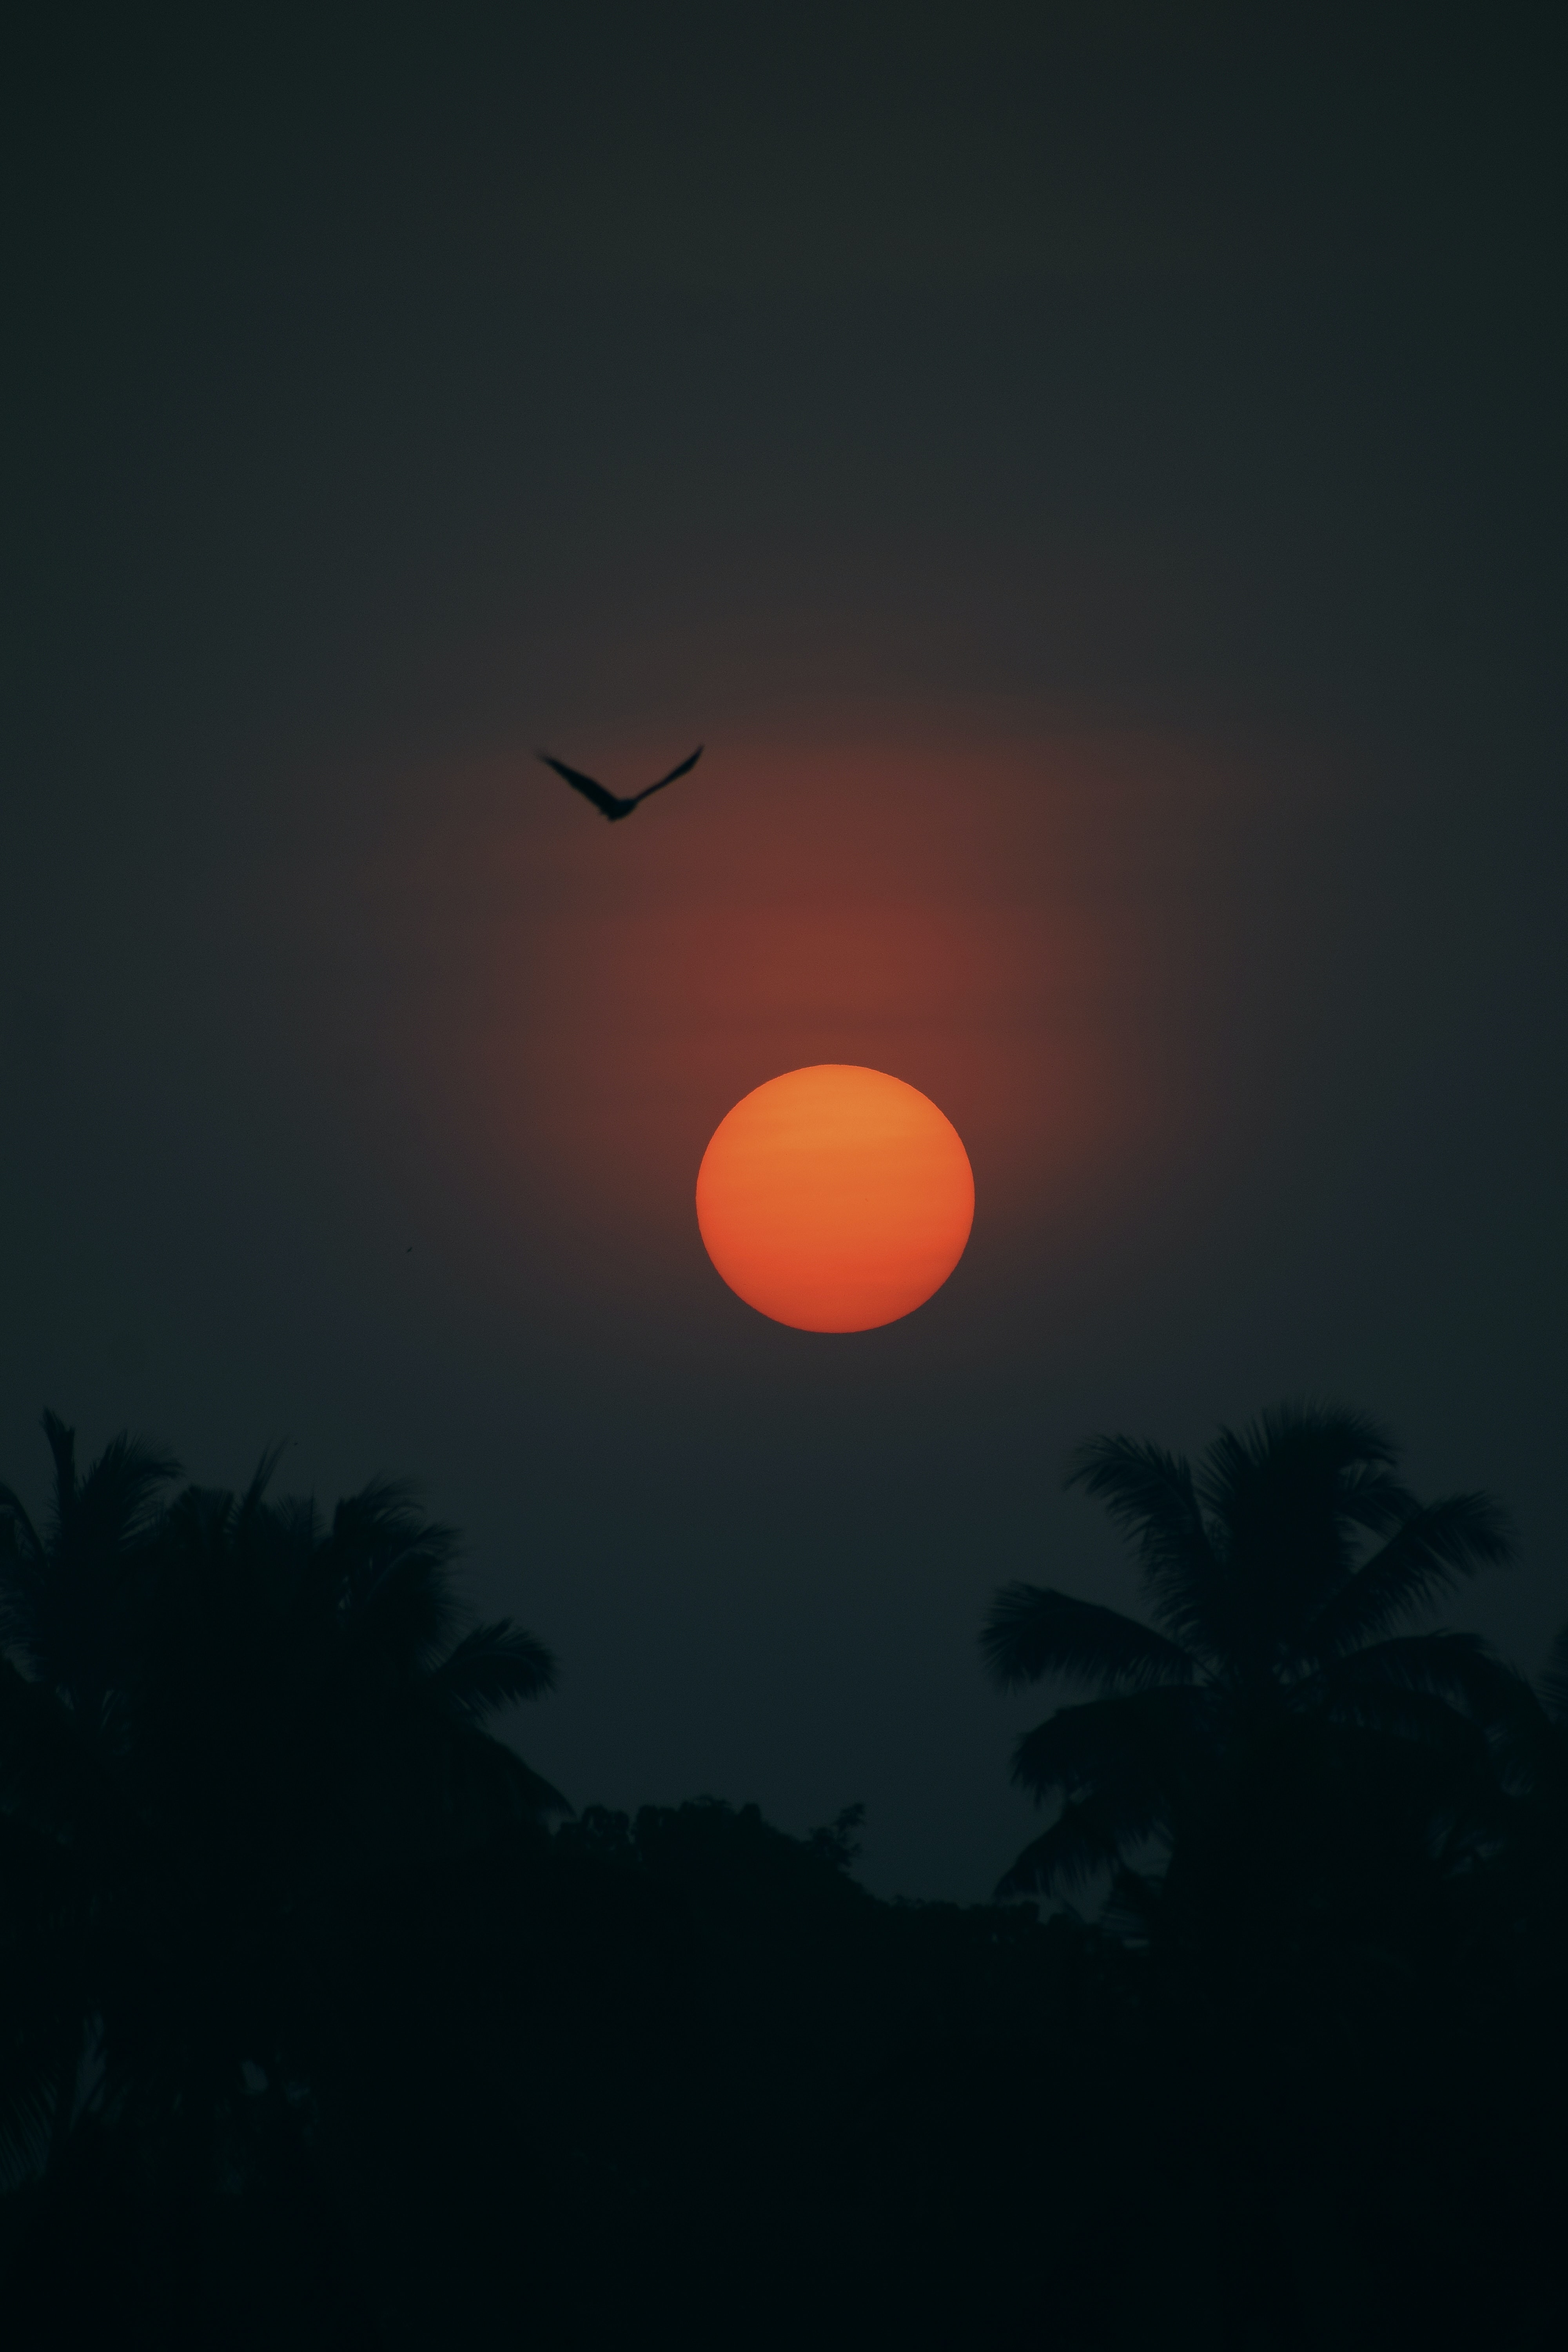 138127 download wallpaper Dark, Bird, Silhouette, Dusk, Twilight, Sun, Palms screensavers and pictures for free